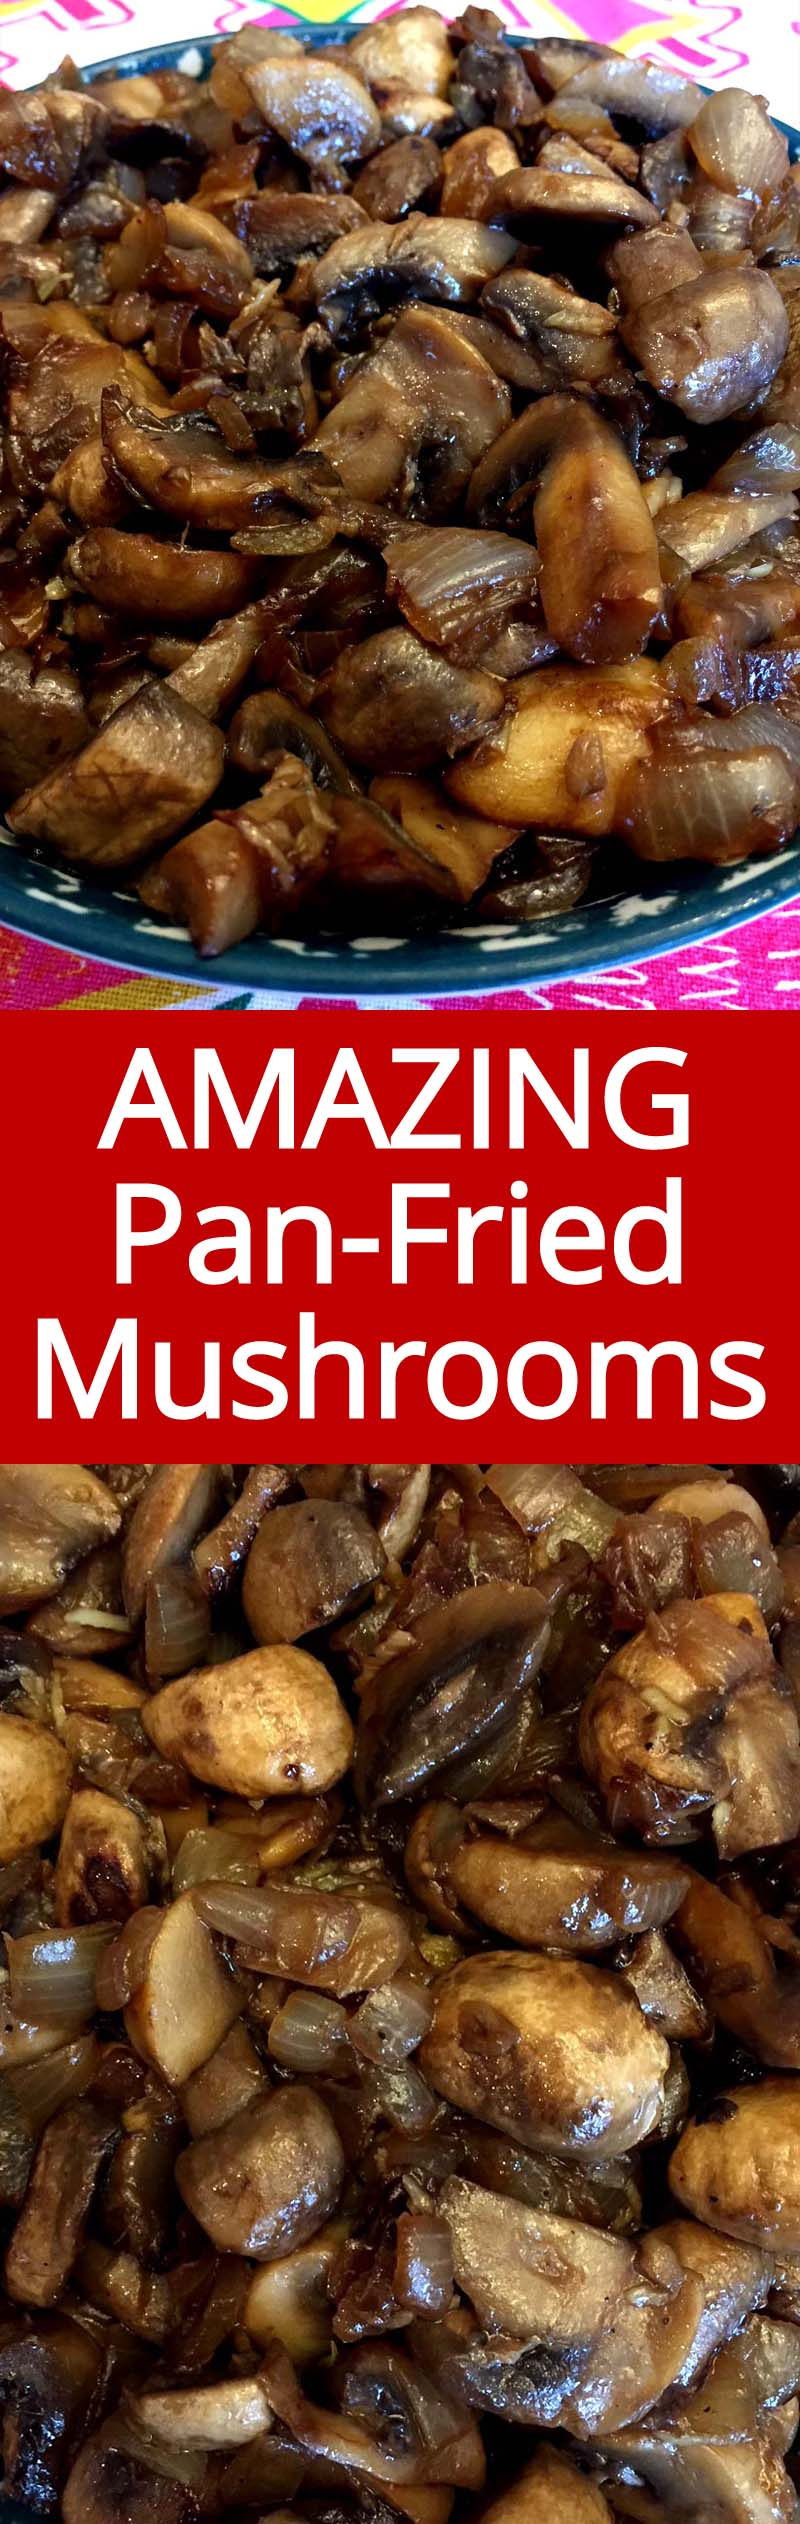 These pan fried mushrooms with onions are amazing! So easy to make, healthy and yummy! I love mushrooms!